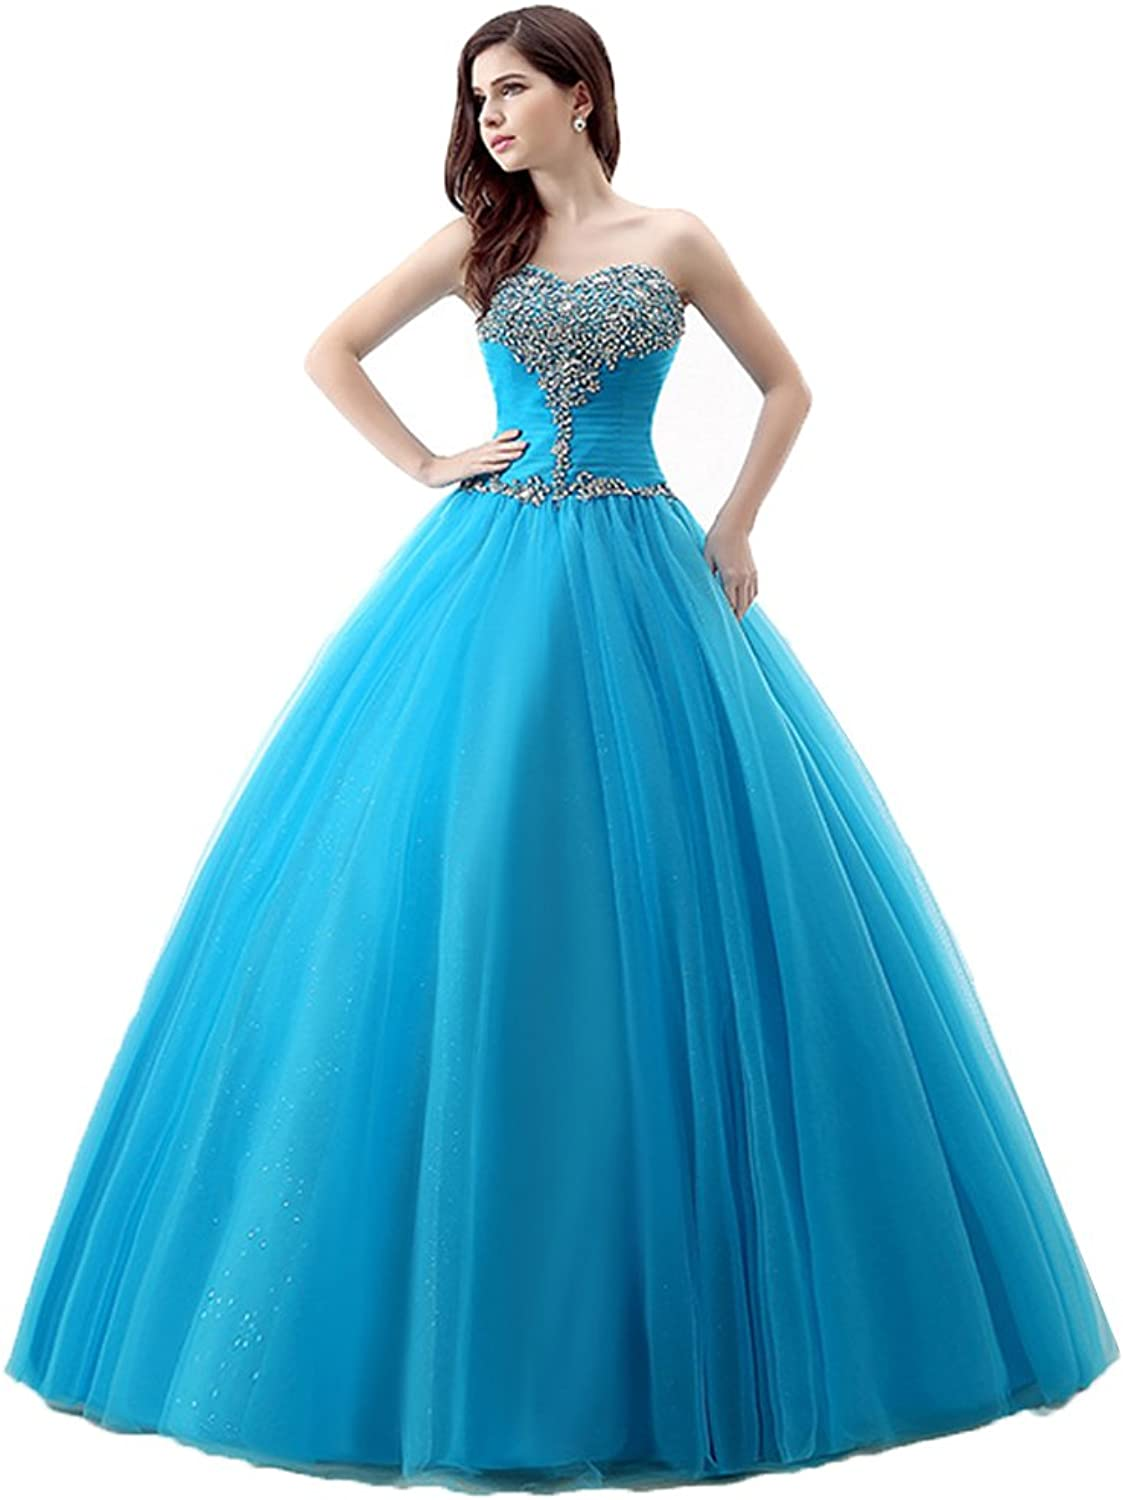 Heloise Women's Quinceanera Dress Tulle Beaded Strapless Ball Gown Lace up Corset Sleeveless Sweet 16 Dress